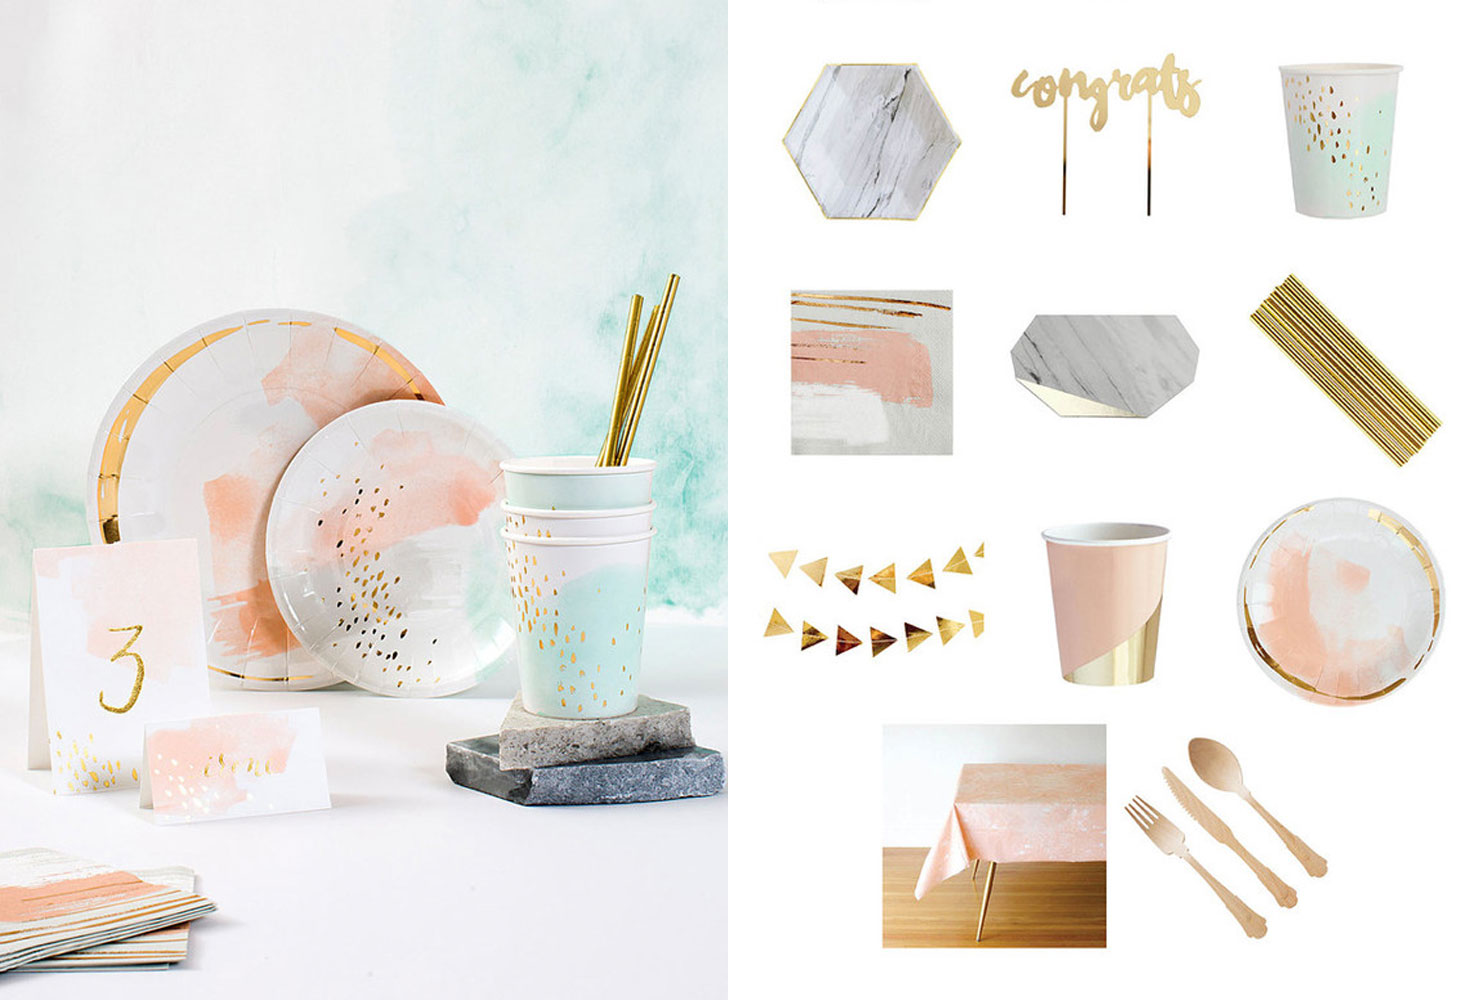 Pink and blue pastel plates with gold accents